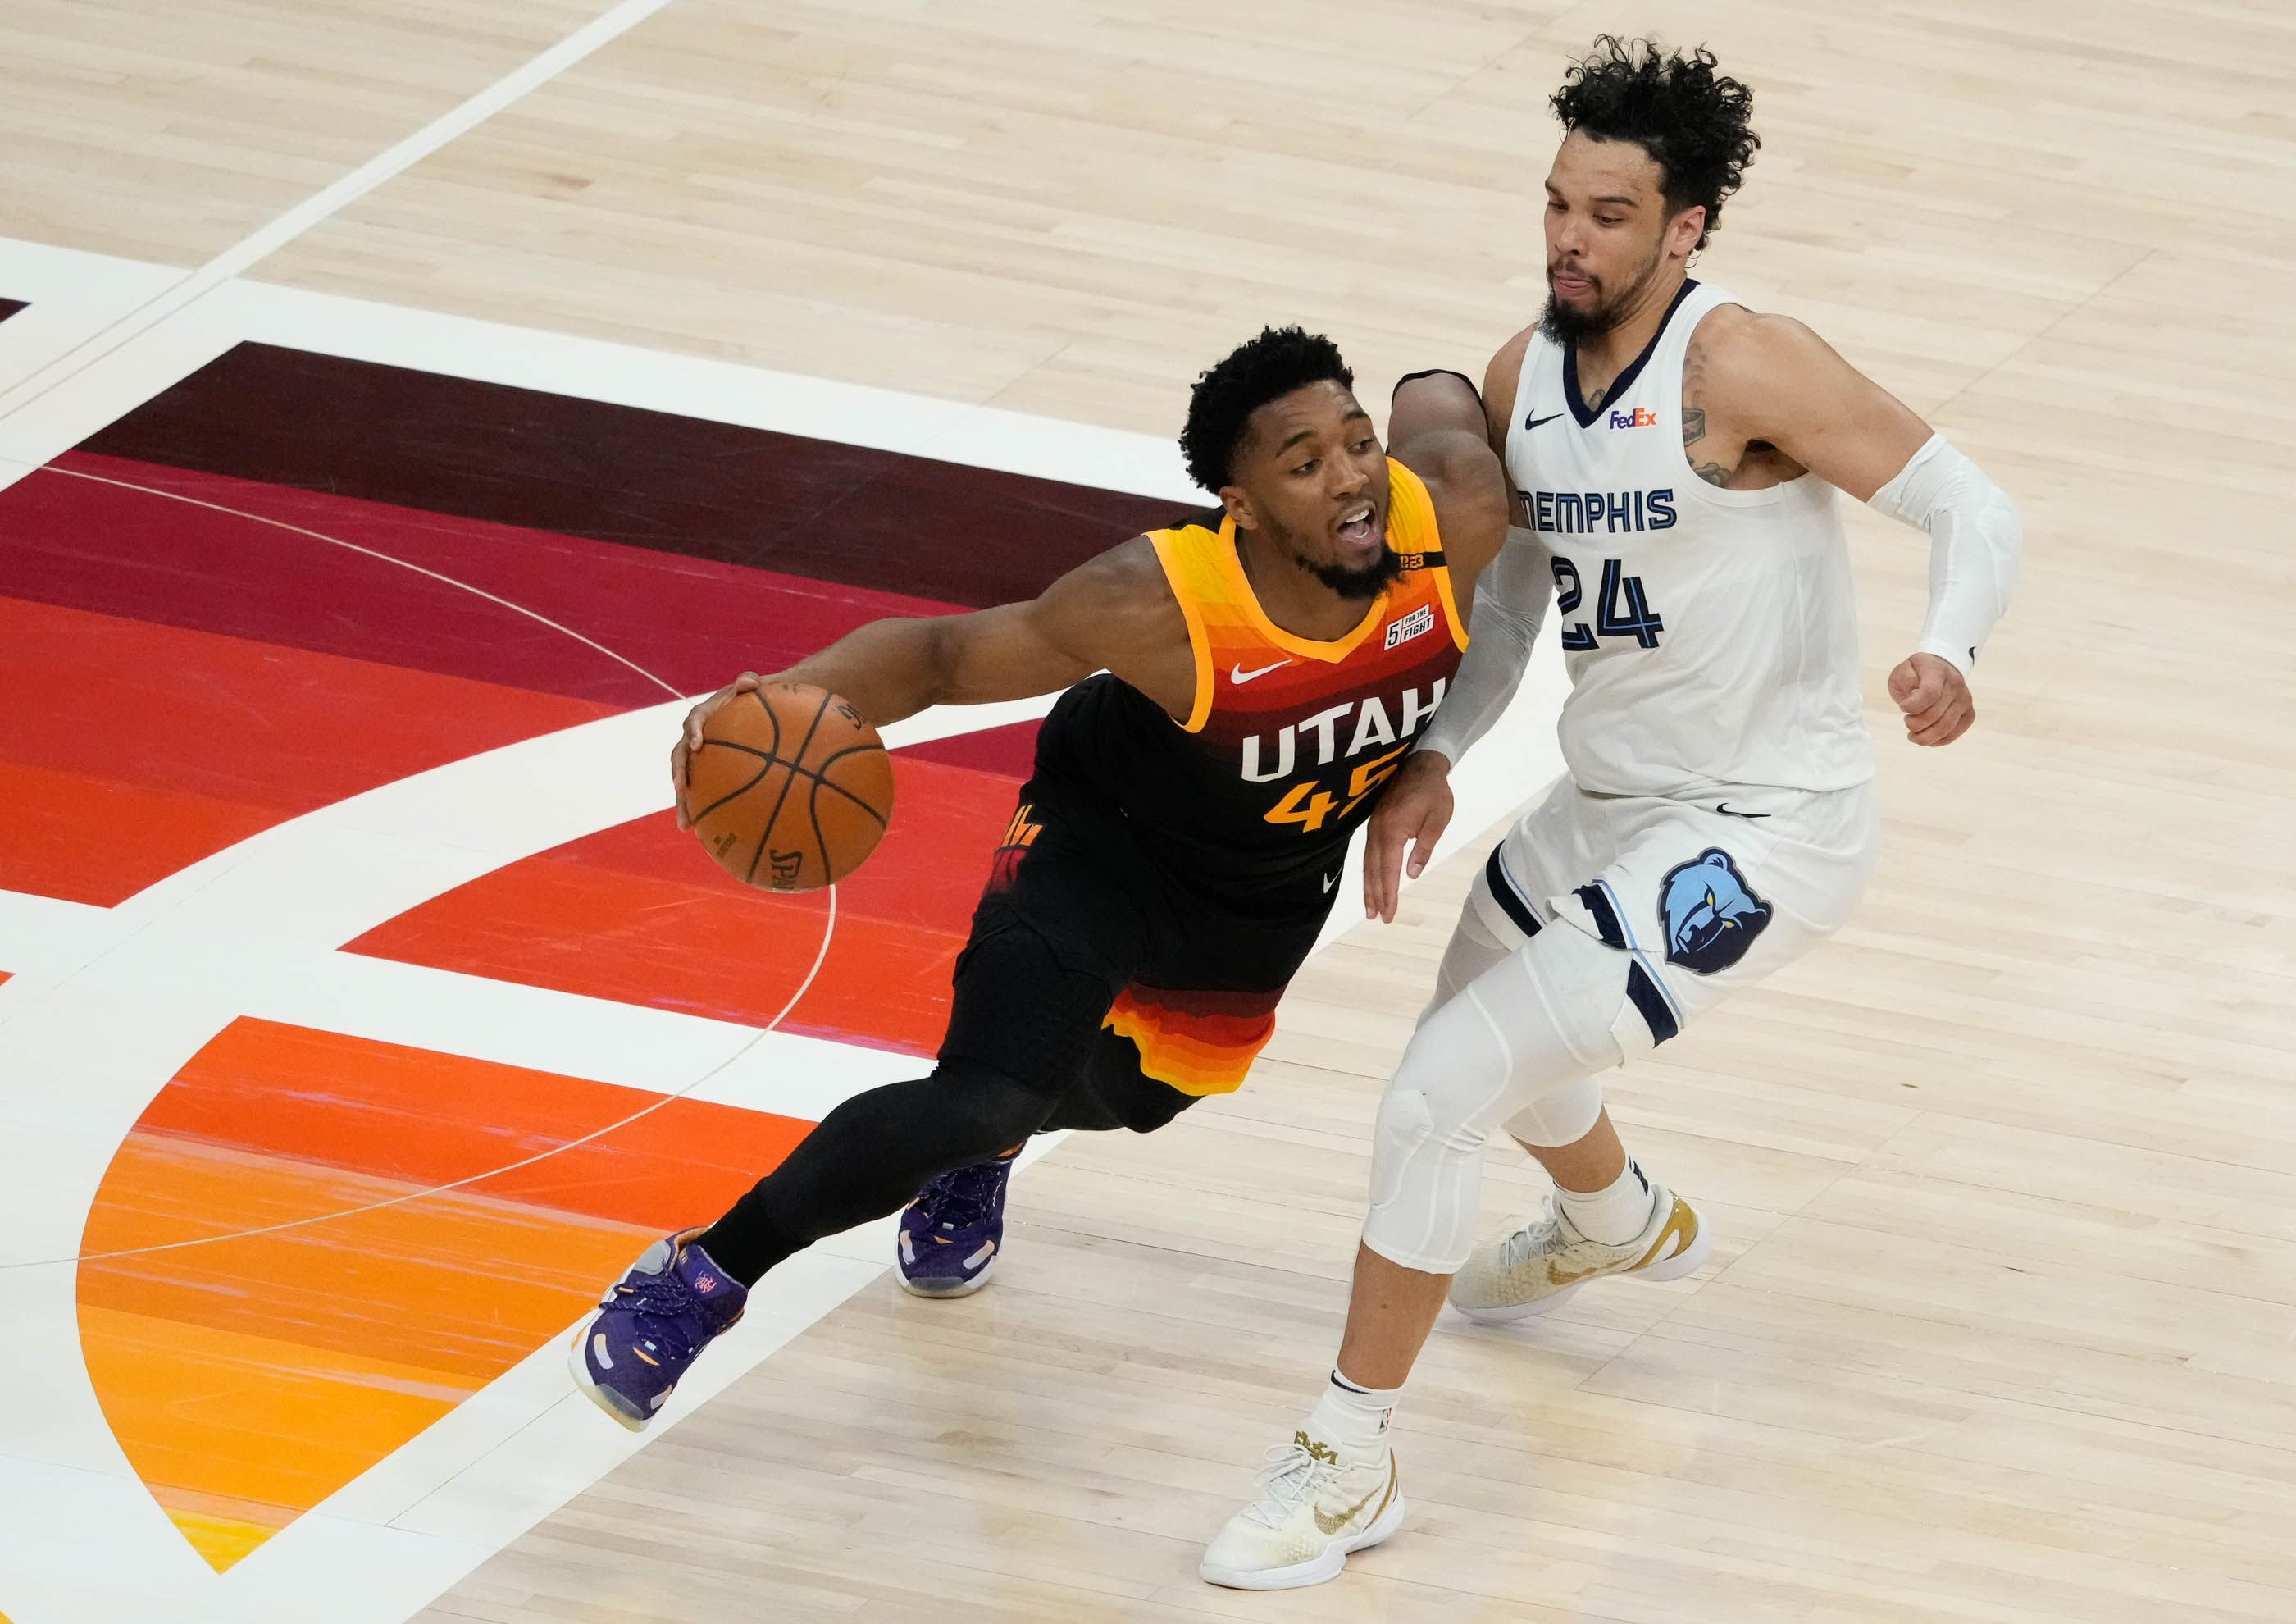 (Francisco Kjolseth | The Salt Lake Tribune) Utah Jazz guard Donovan Mitchell (45) pushes past Memphis Grizzlies forward Dillon Brooks (24) in the second half of Game 5 of an NBA basketball first-round playoff series Wednesday, June 2, 2021, in Salt Lake City, UT.